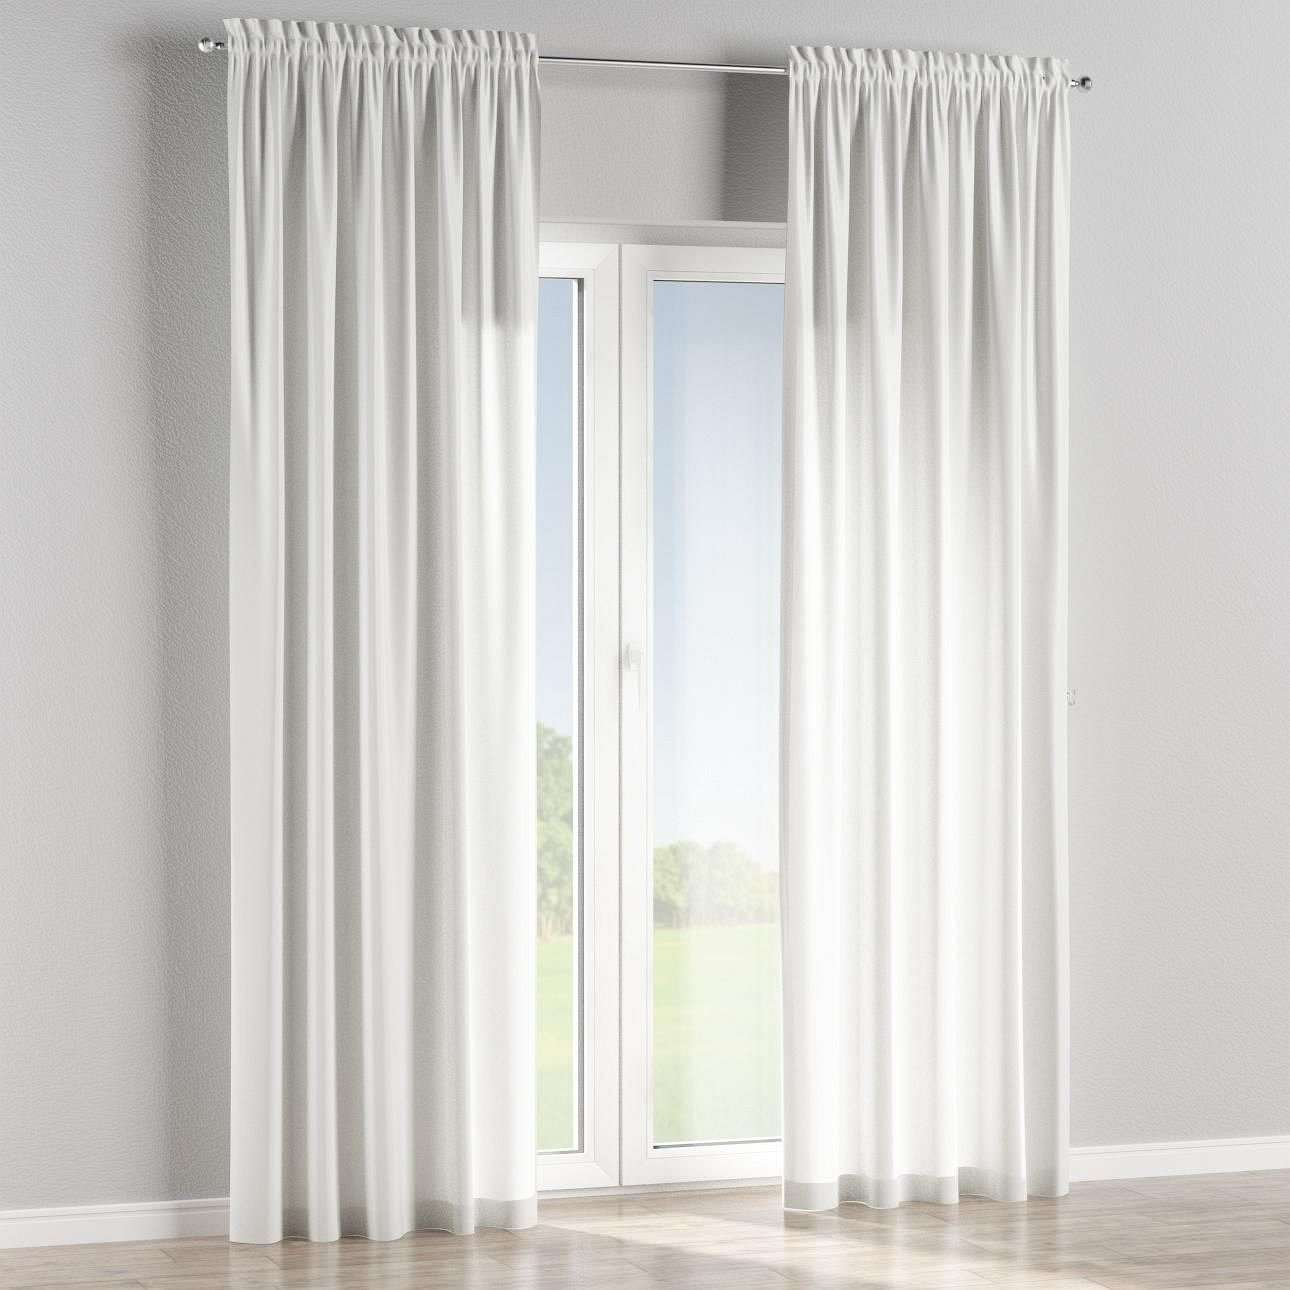 Slot and frill lined curtains in collection Ashley, fabric: 137-73